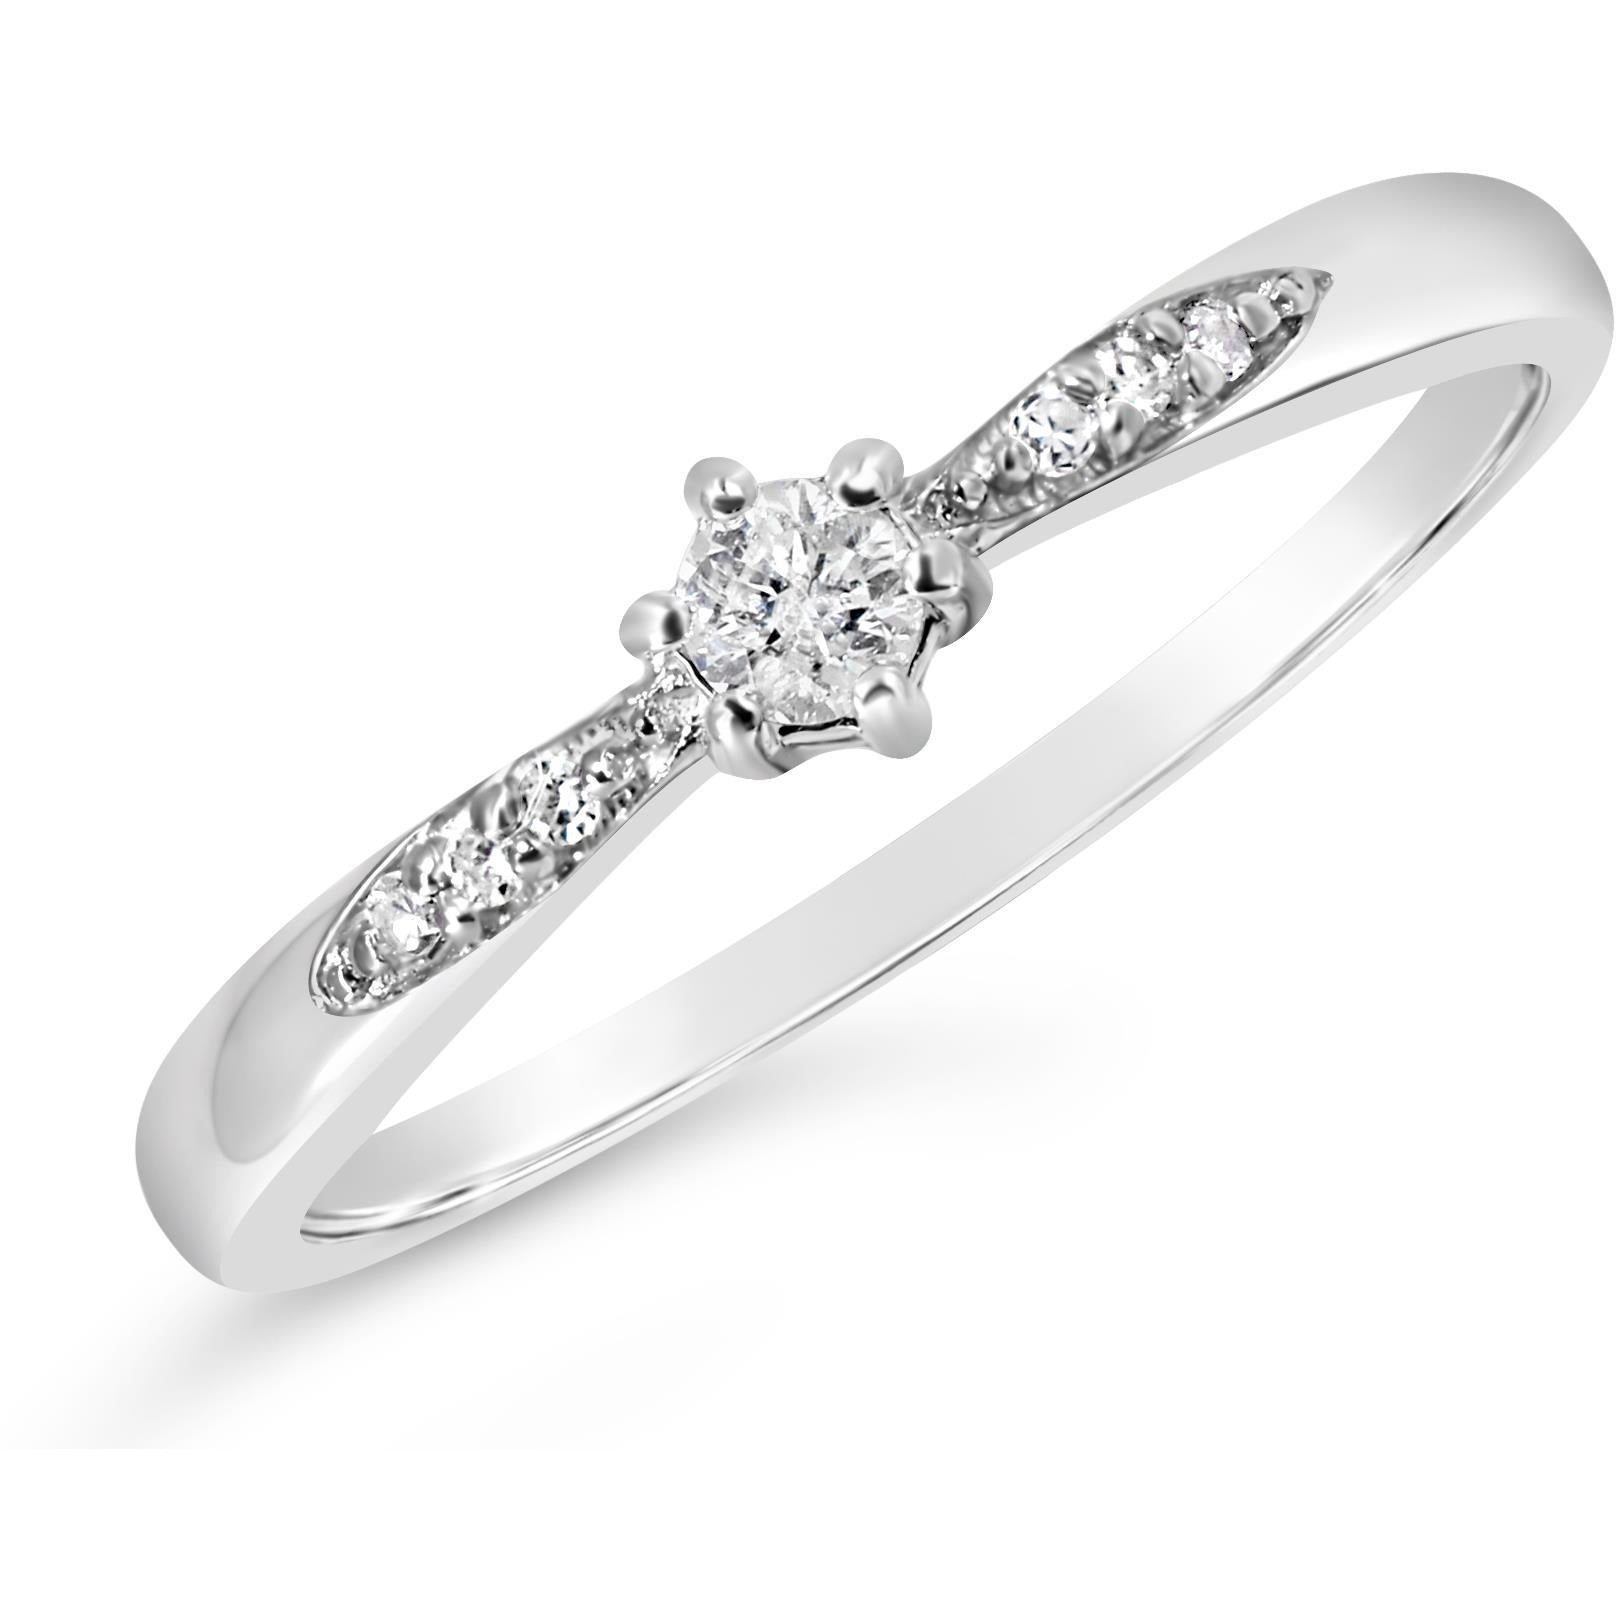 promise ring diamond solitaire with diamonds on white gold band